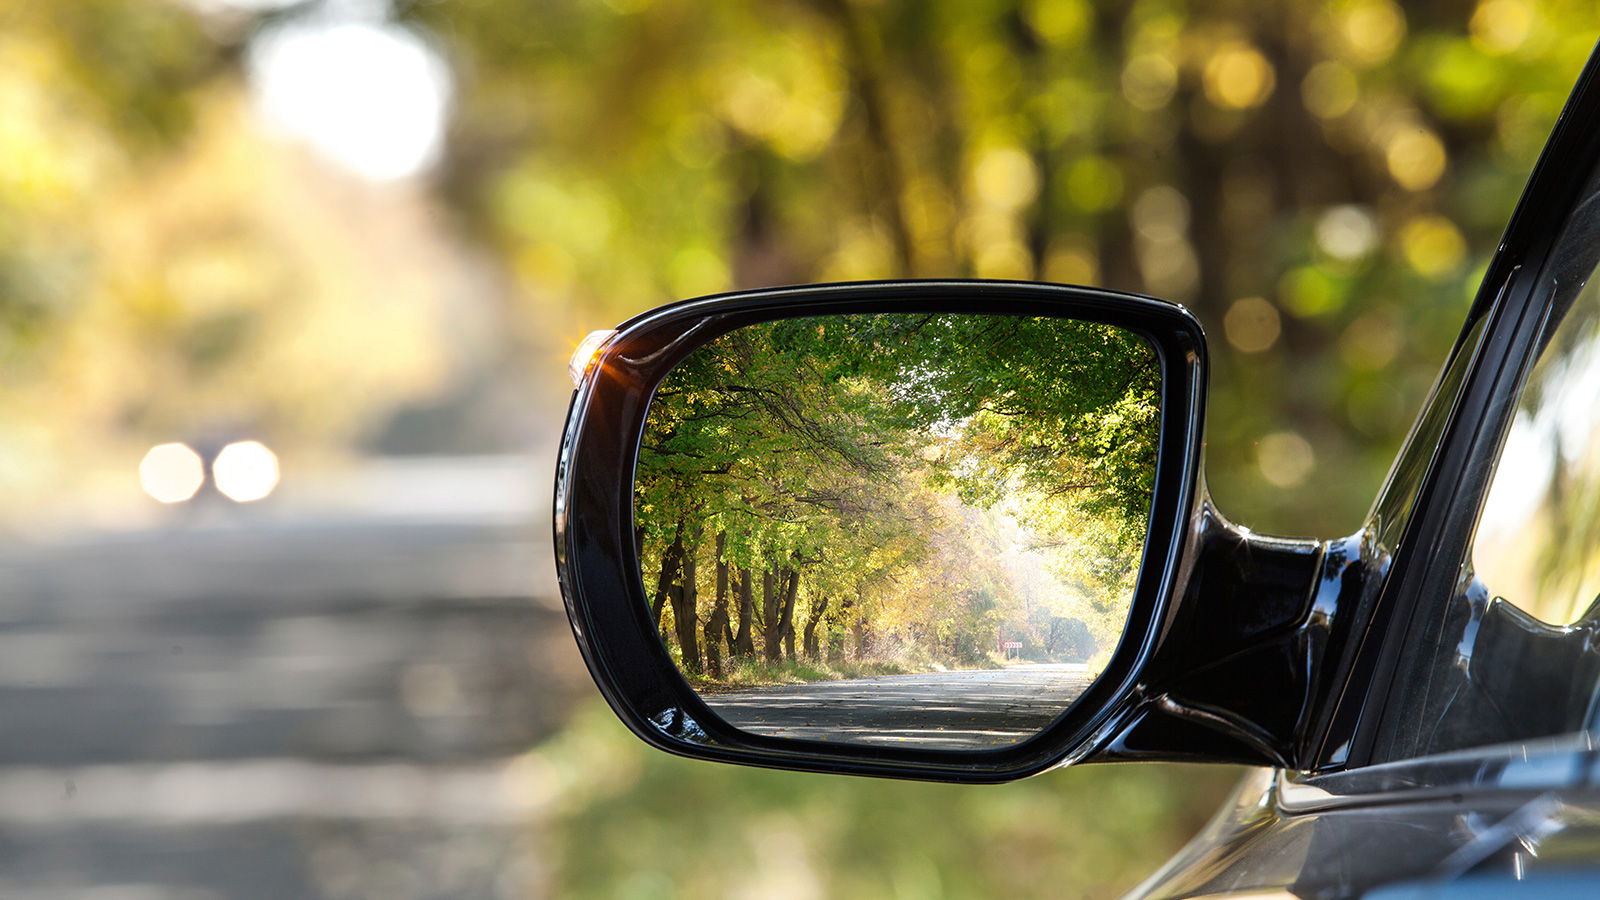 Reflection of a street in a rear view mirror during fall